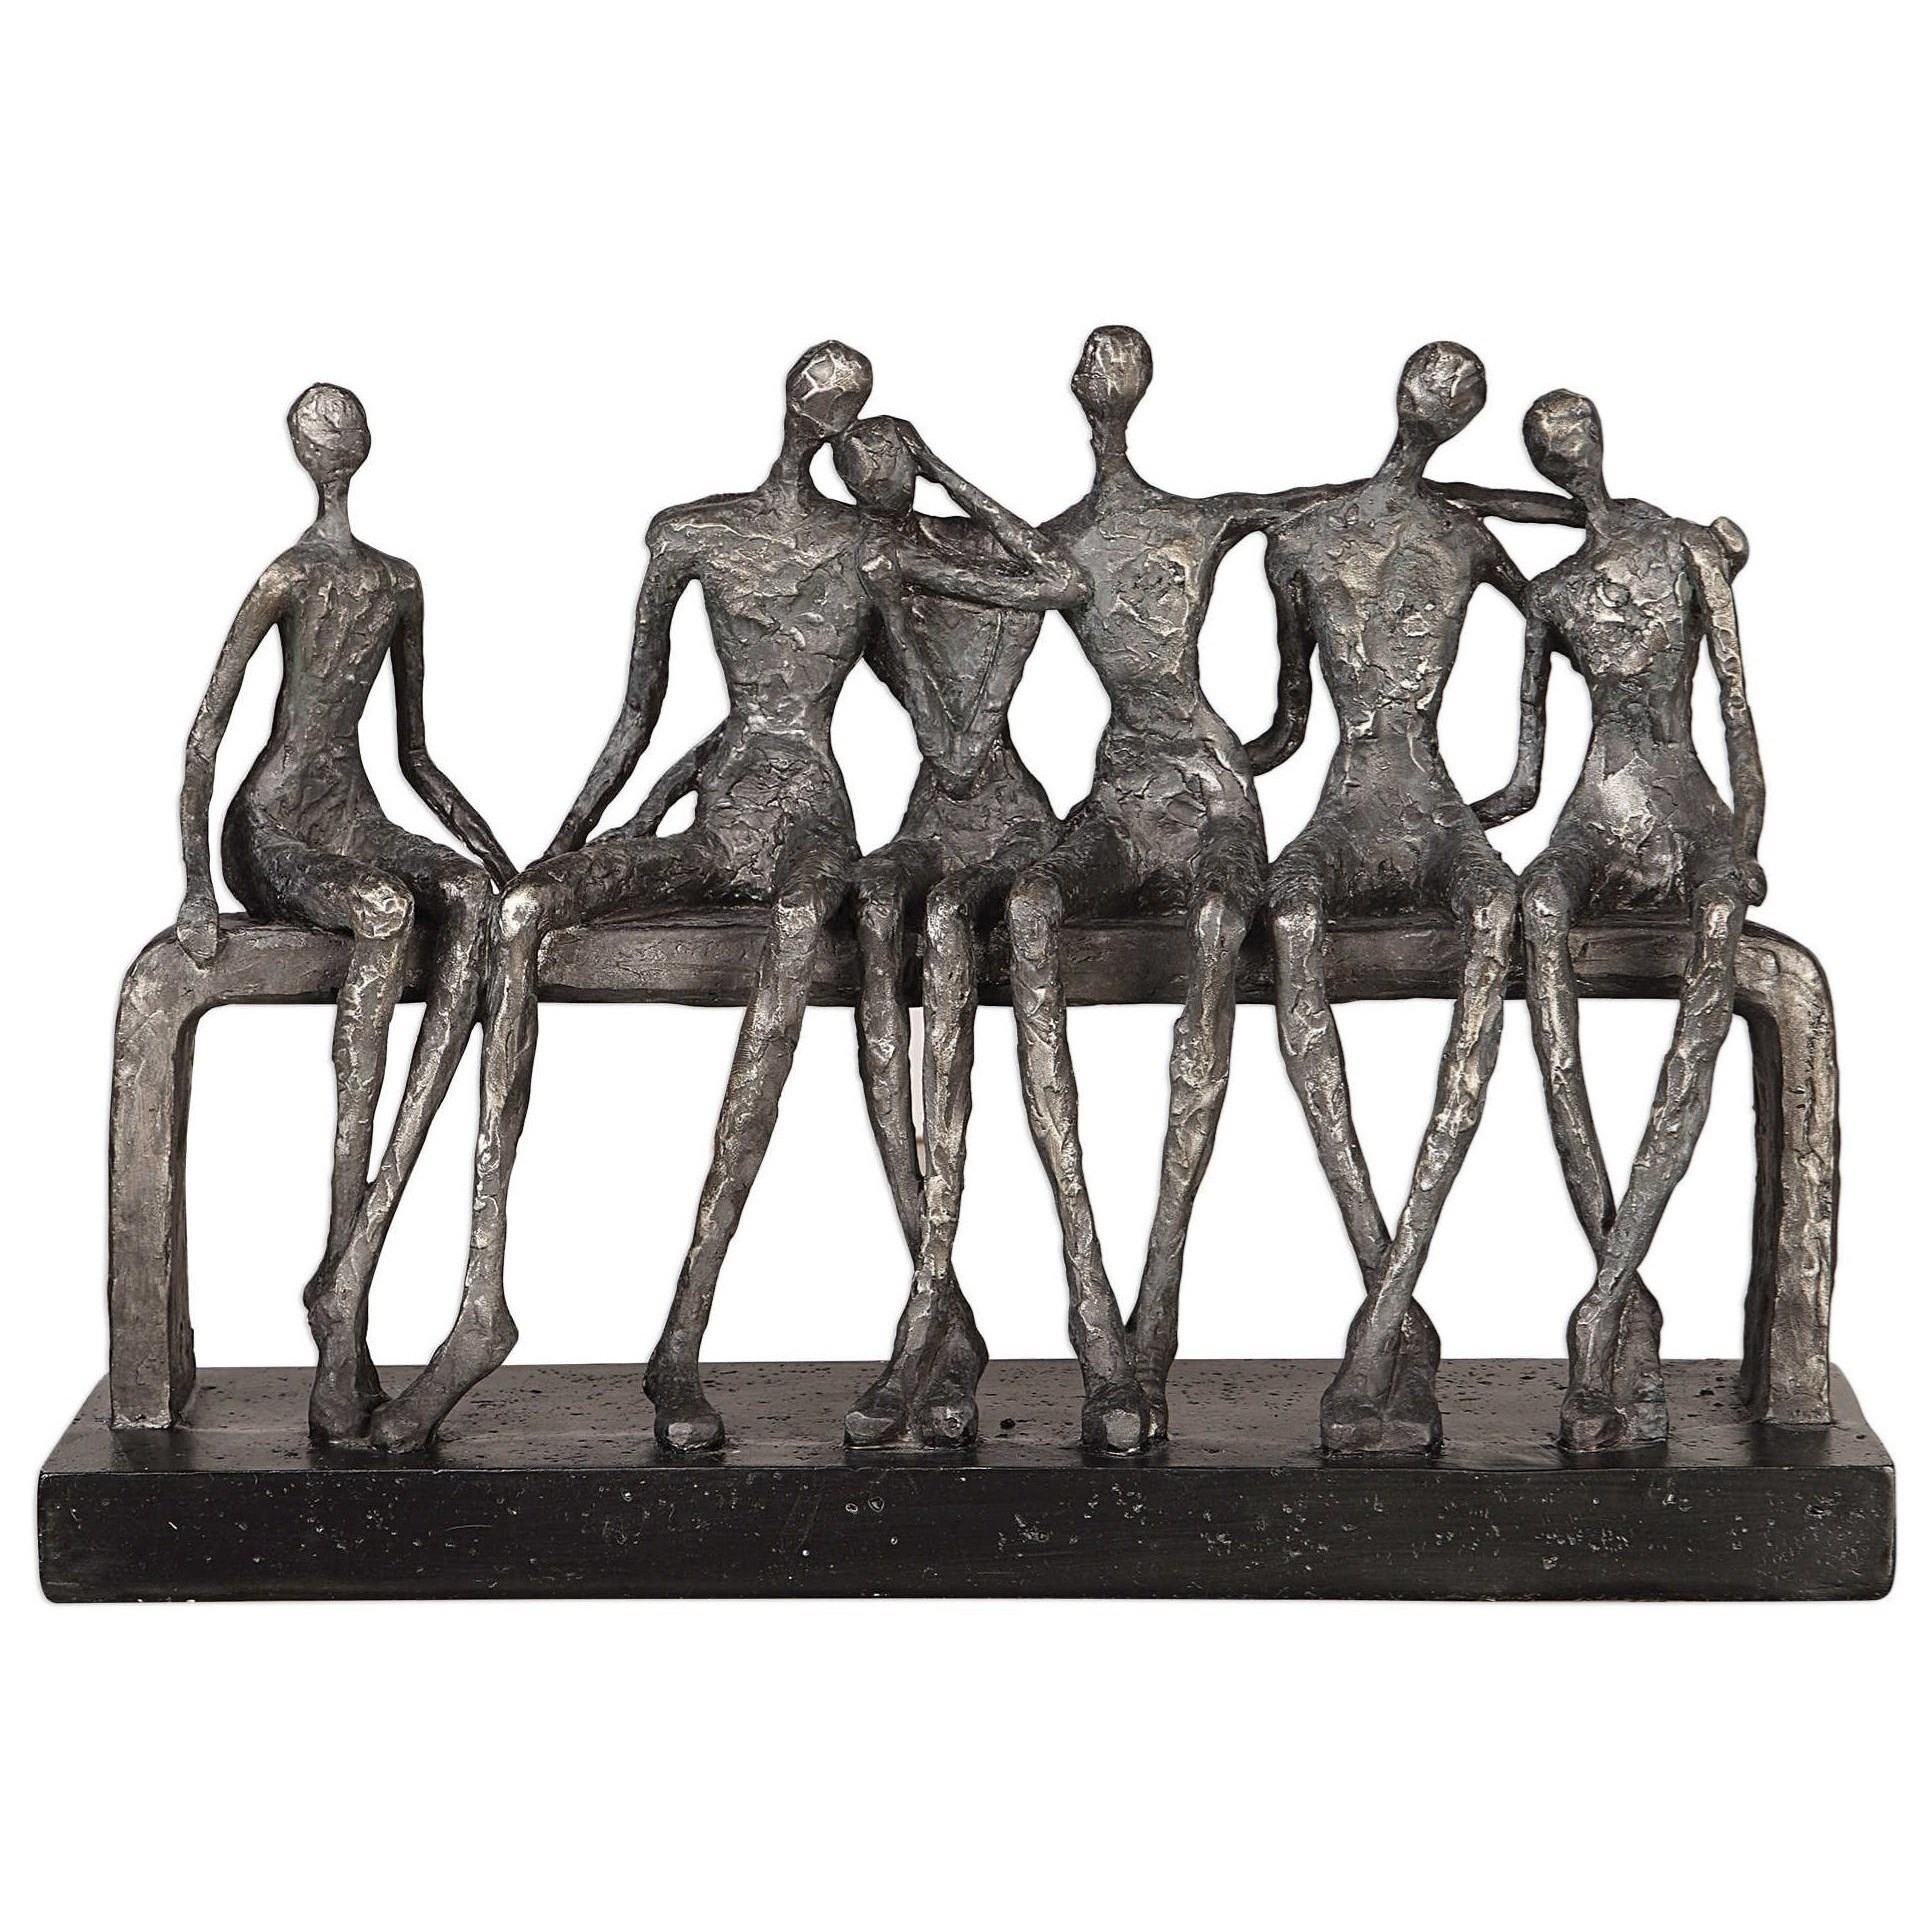 Accessories - Statues and Figurines Camaraderie Aged Silver Figurine by Uttermost at Suburban Furniture